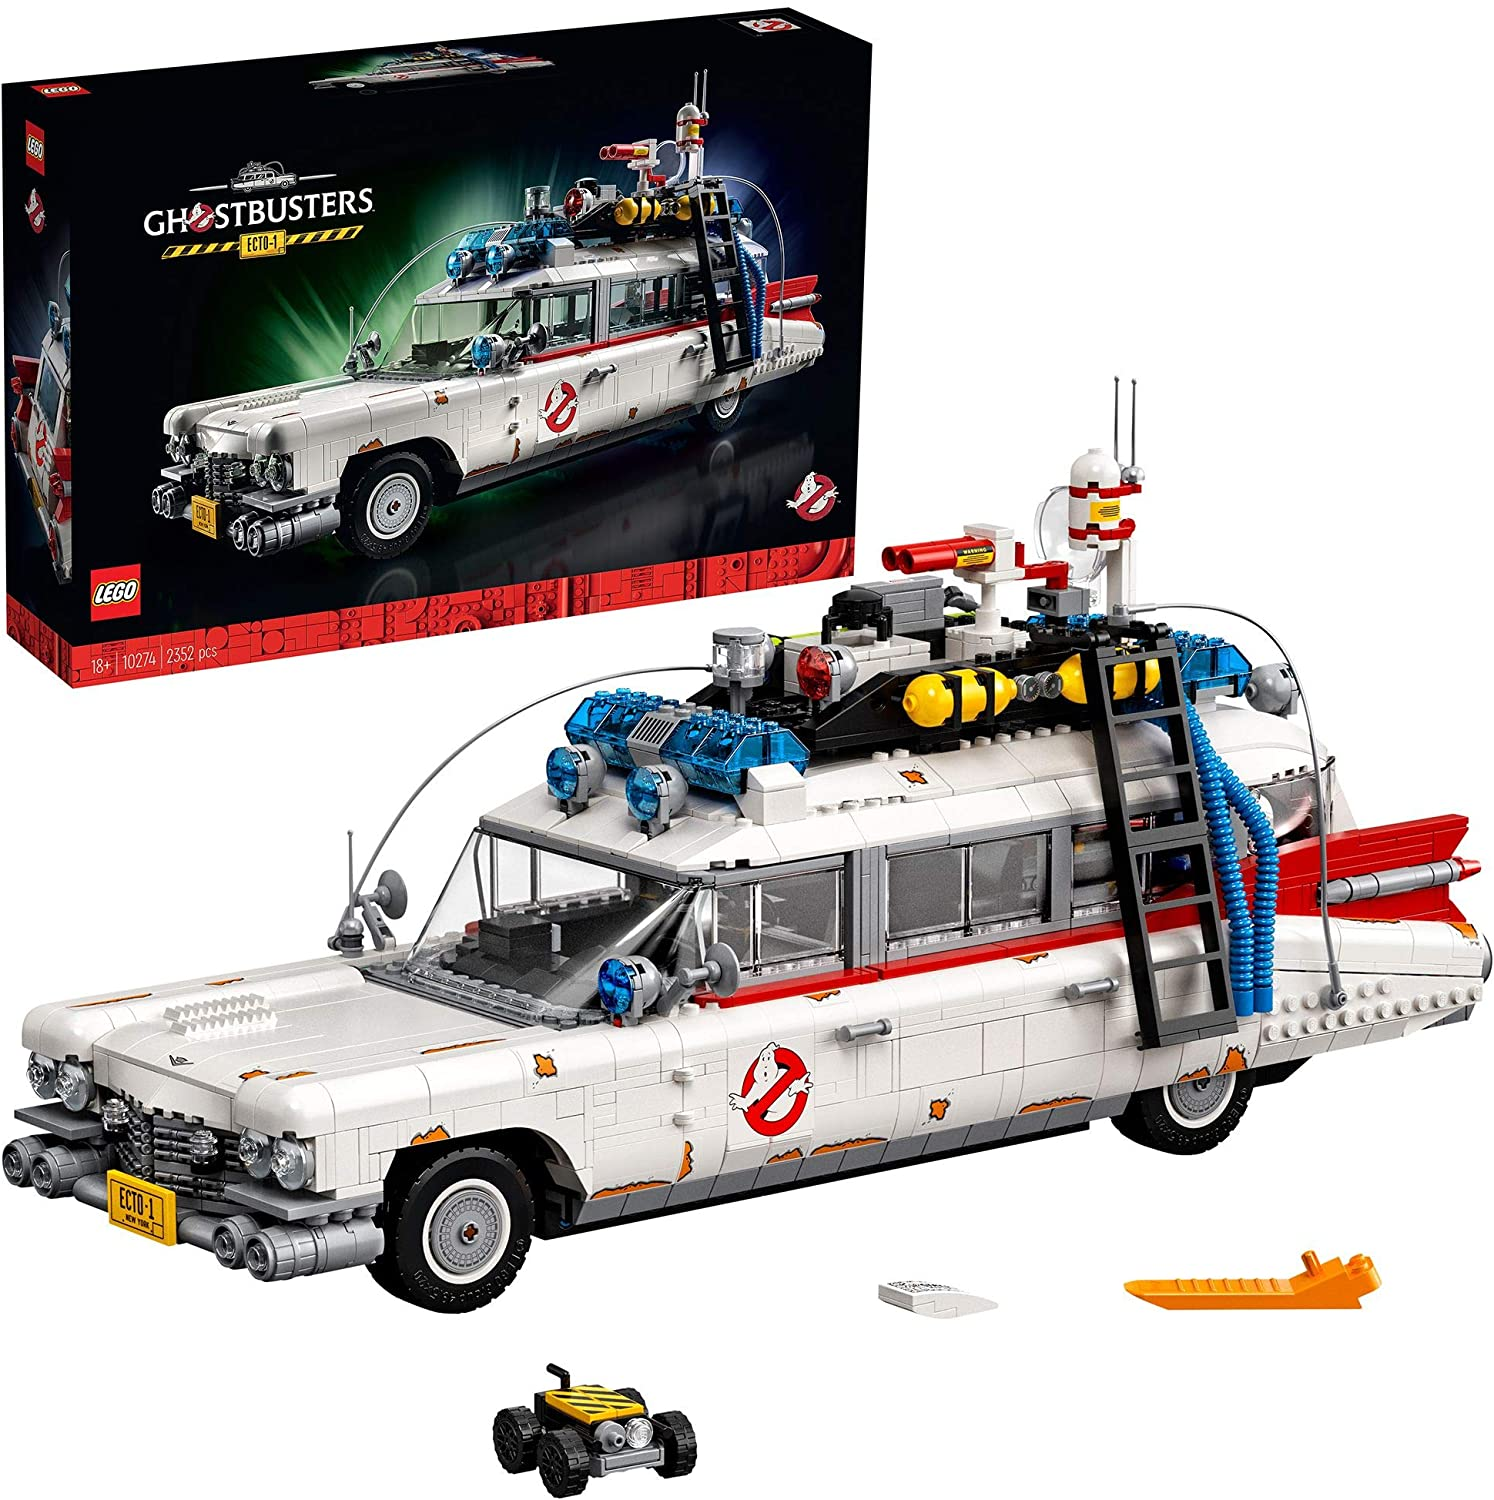 ECTO-1 LEGO Ghostbusters 2021